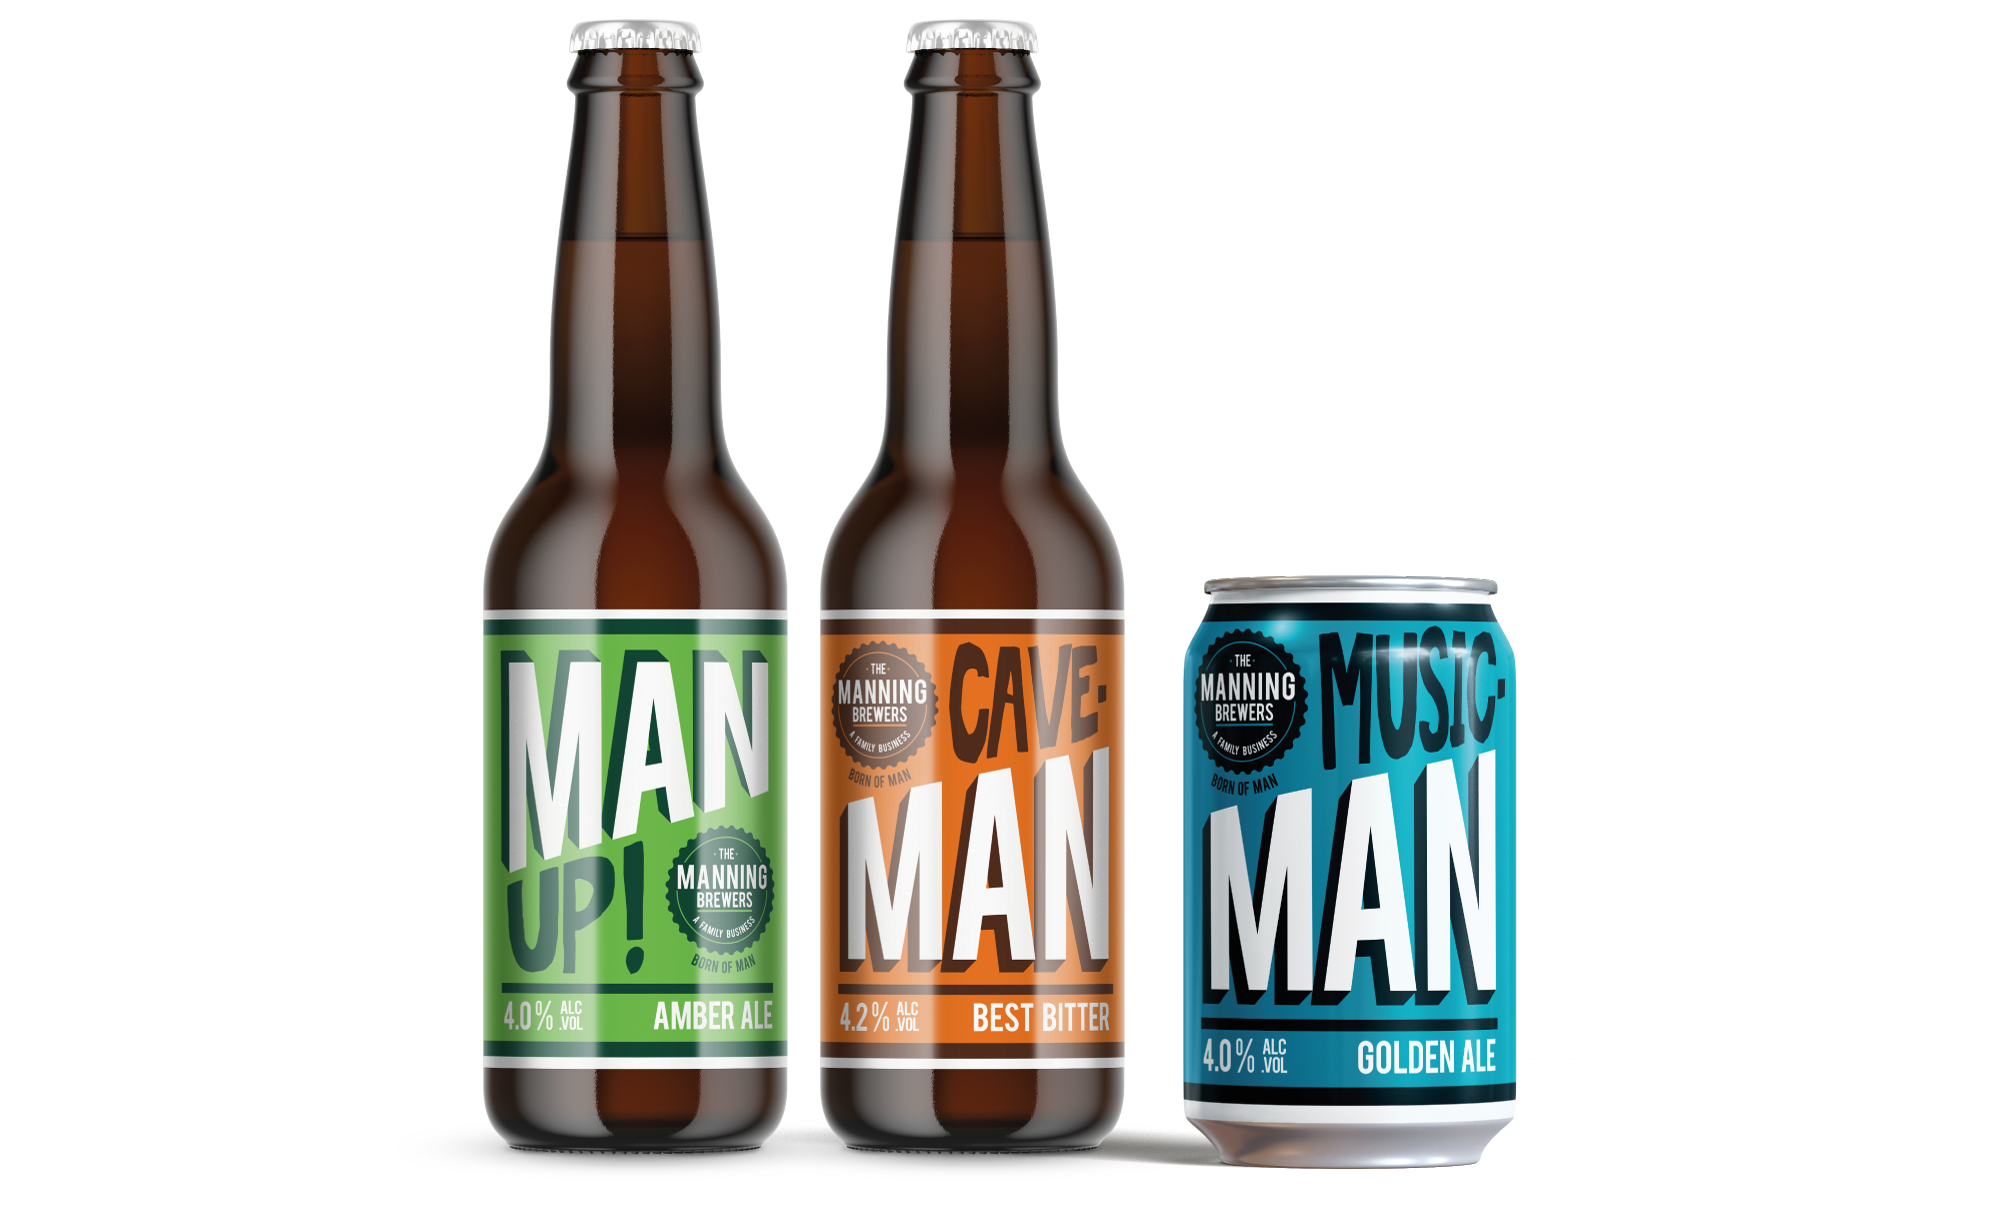 Manning Brewers Bottle and Can artwork design by AD Profile